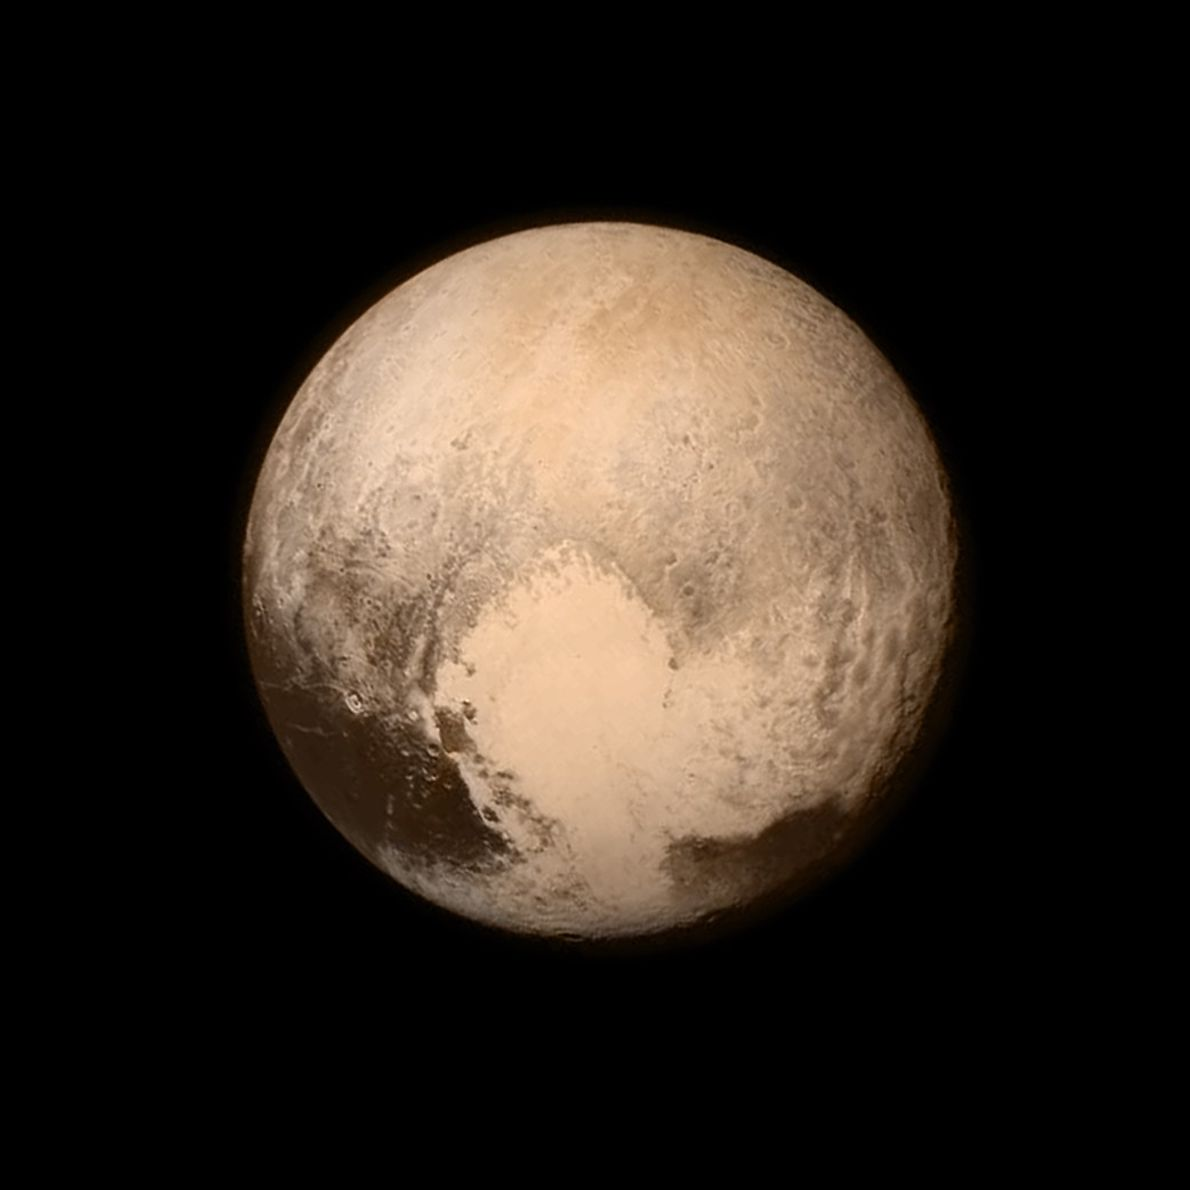 Pluto nearly fills the frame in this black and white image from the Long Range Reconnaissance ...